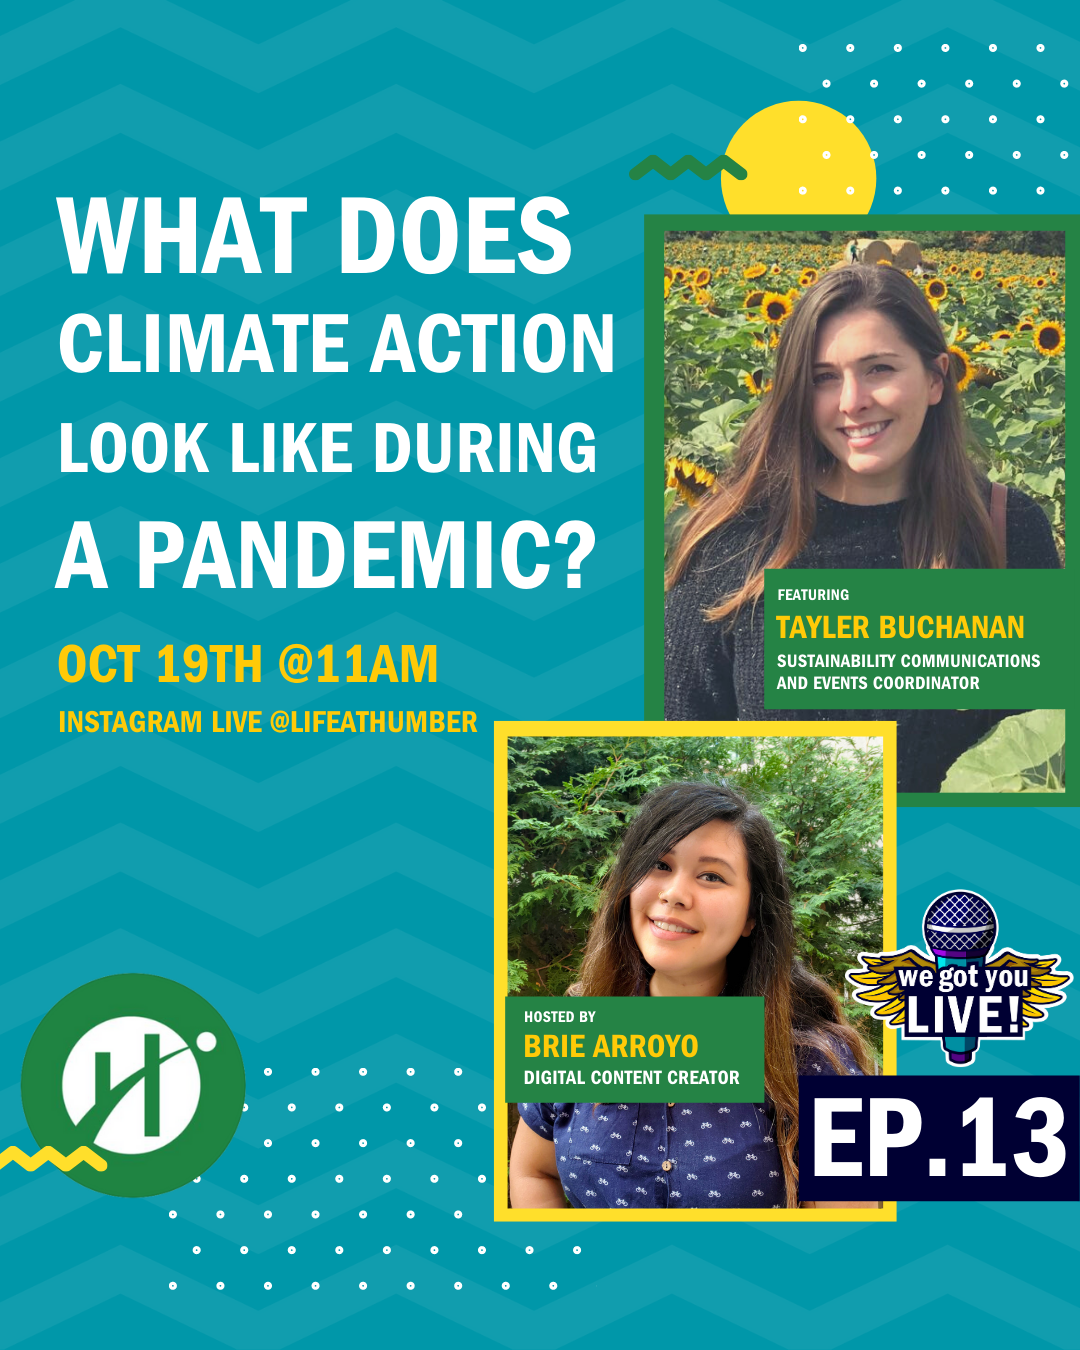 What does climate action look like during a pandemic with Tayler Buchanan, Sustainability Communication and Event Coordinator, hosted by Brie Arroyo